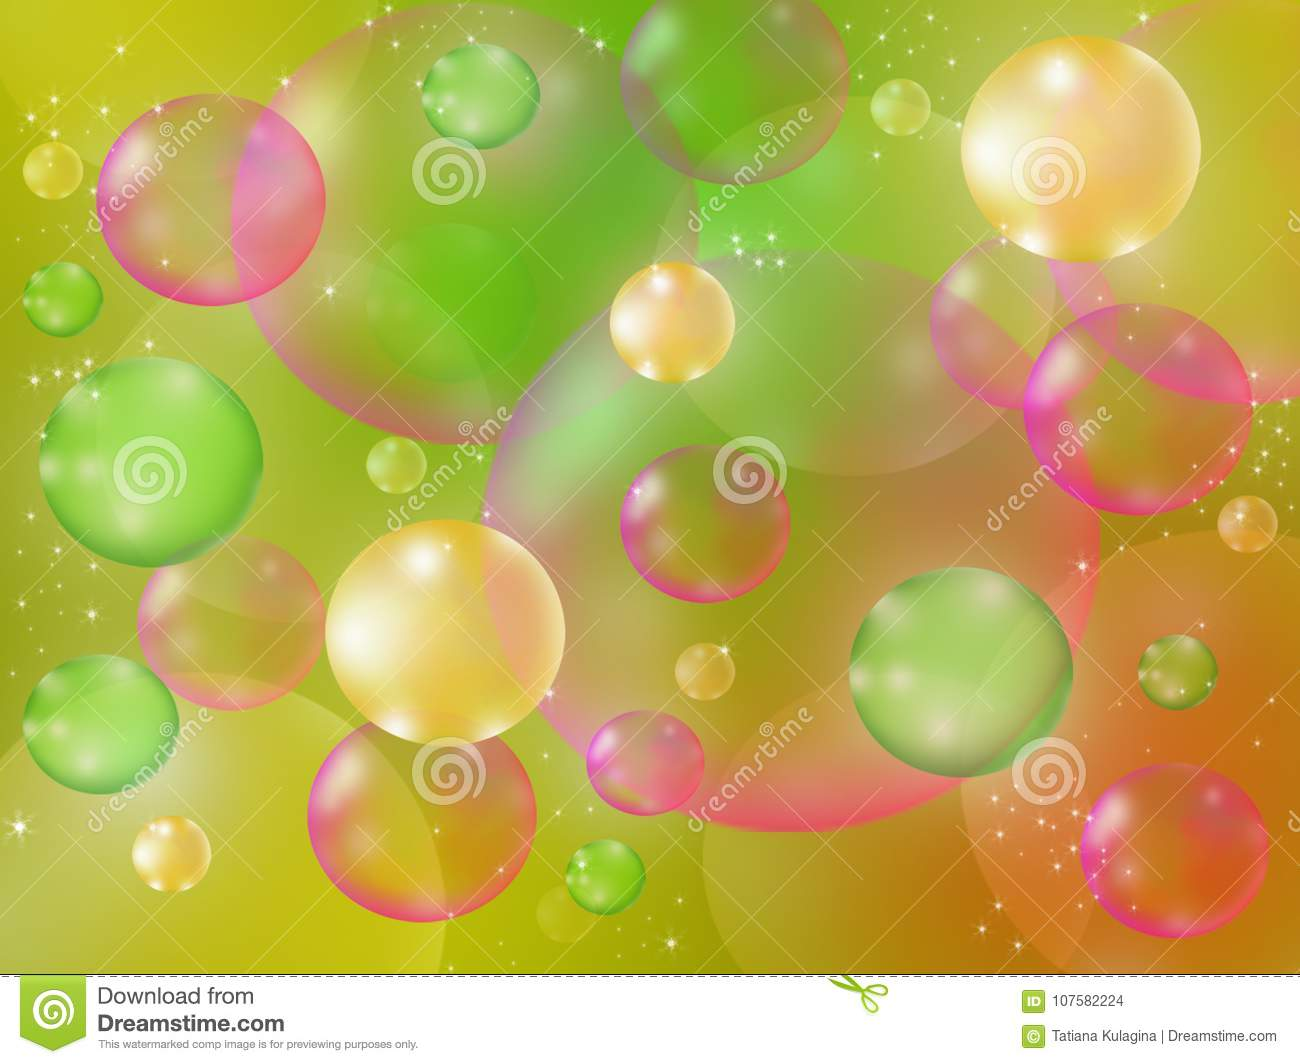 soap bubbles on a colored background stock illustration